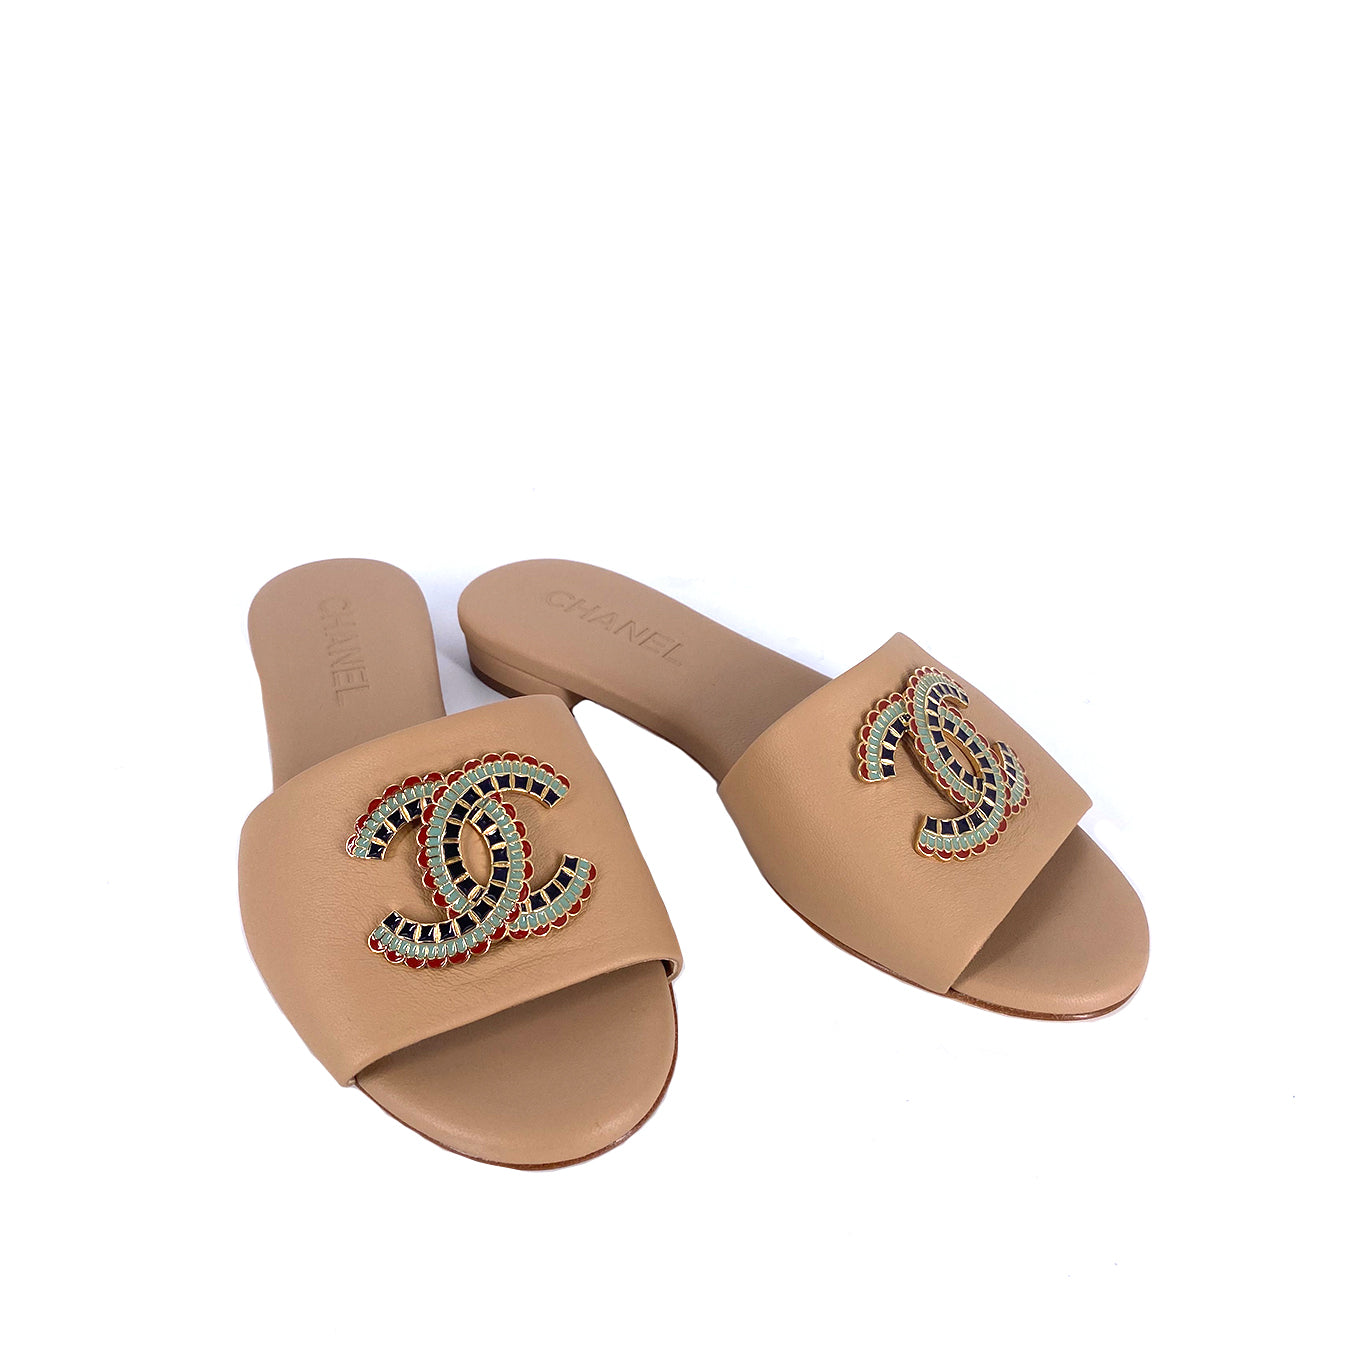 Chanel Mier Slippers with Logo CC Beige Size 36.5